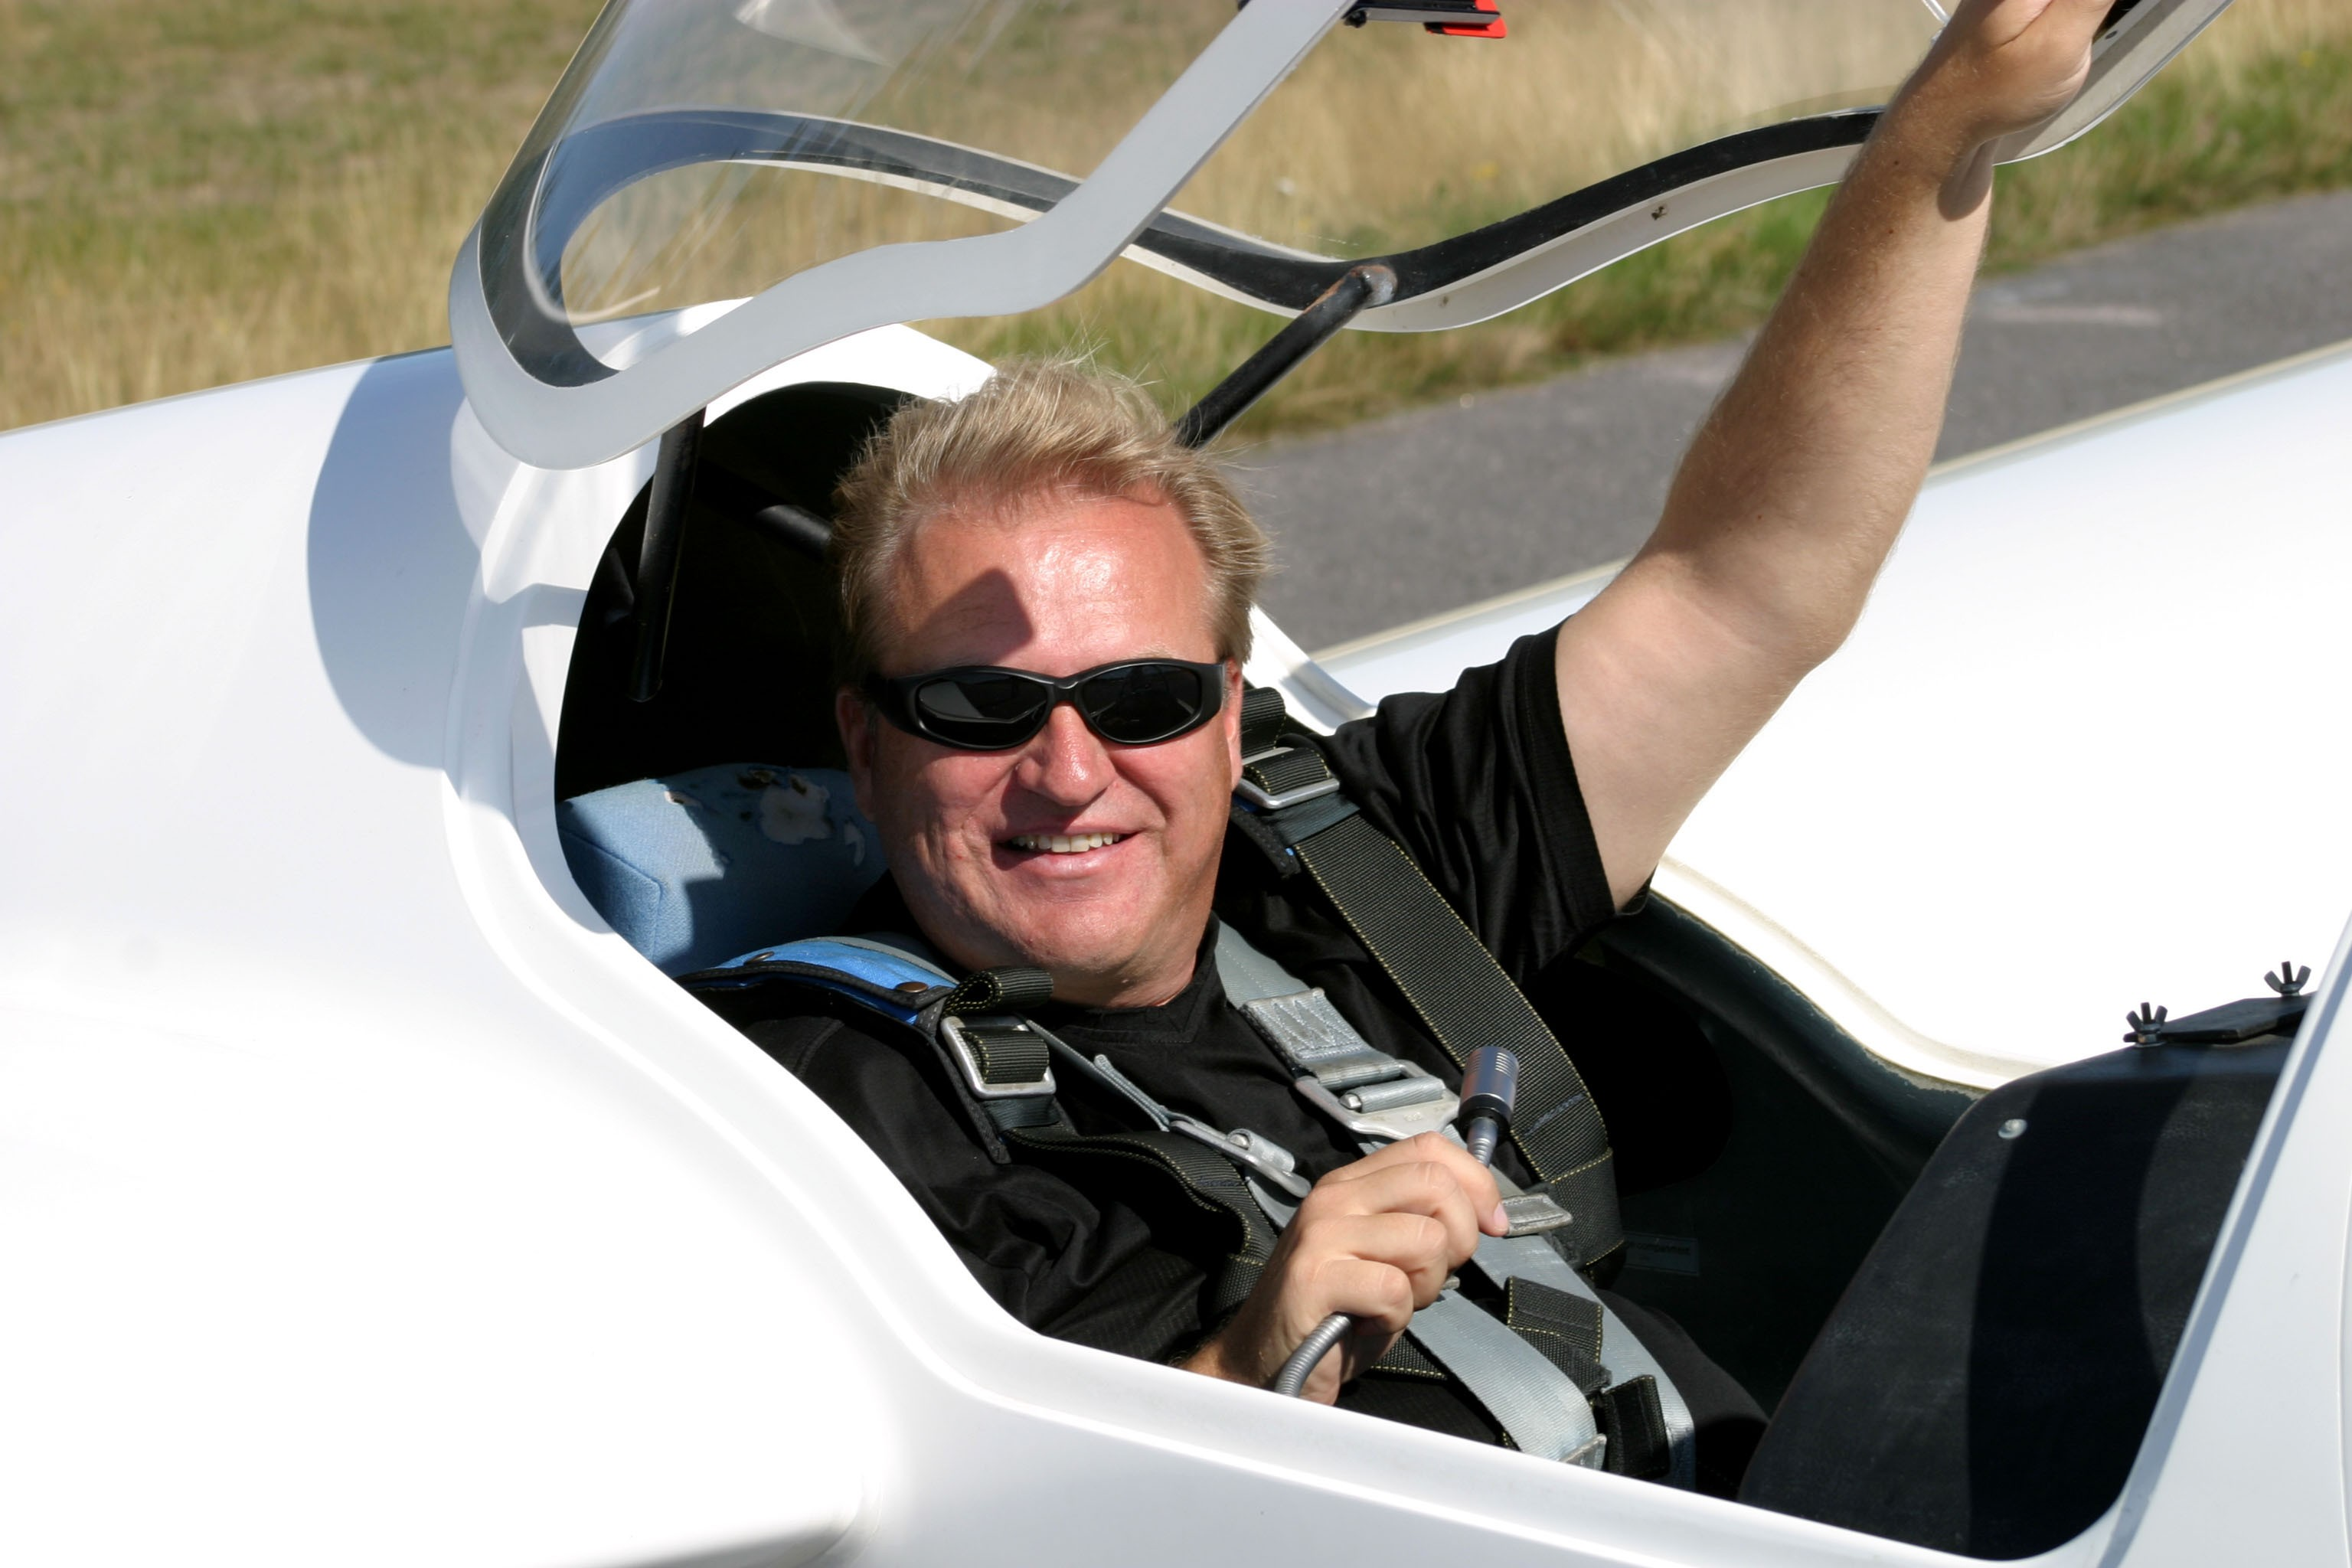 Matti Peura - Finnish Glider Aerobatic Champion in 2005